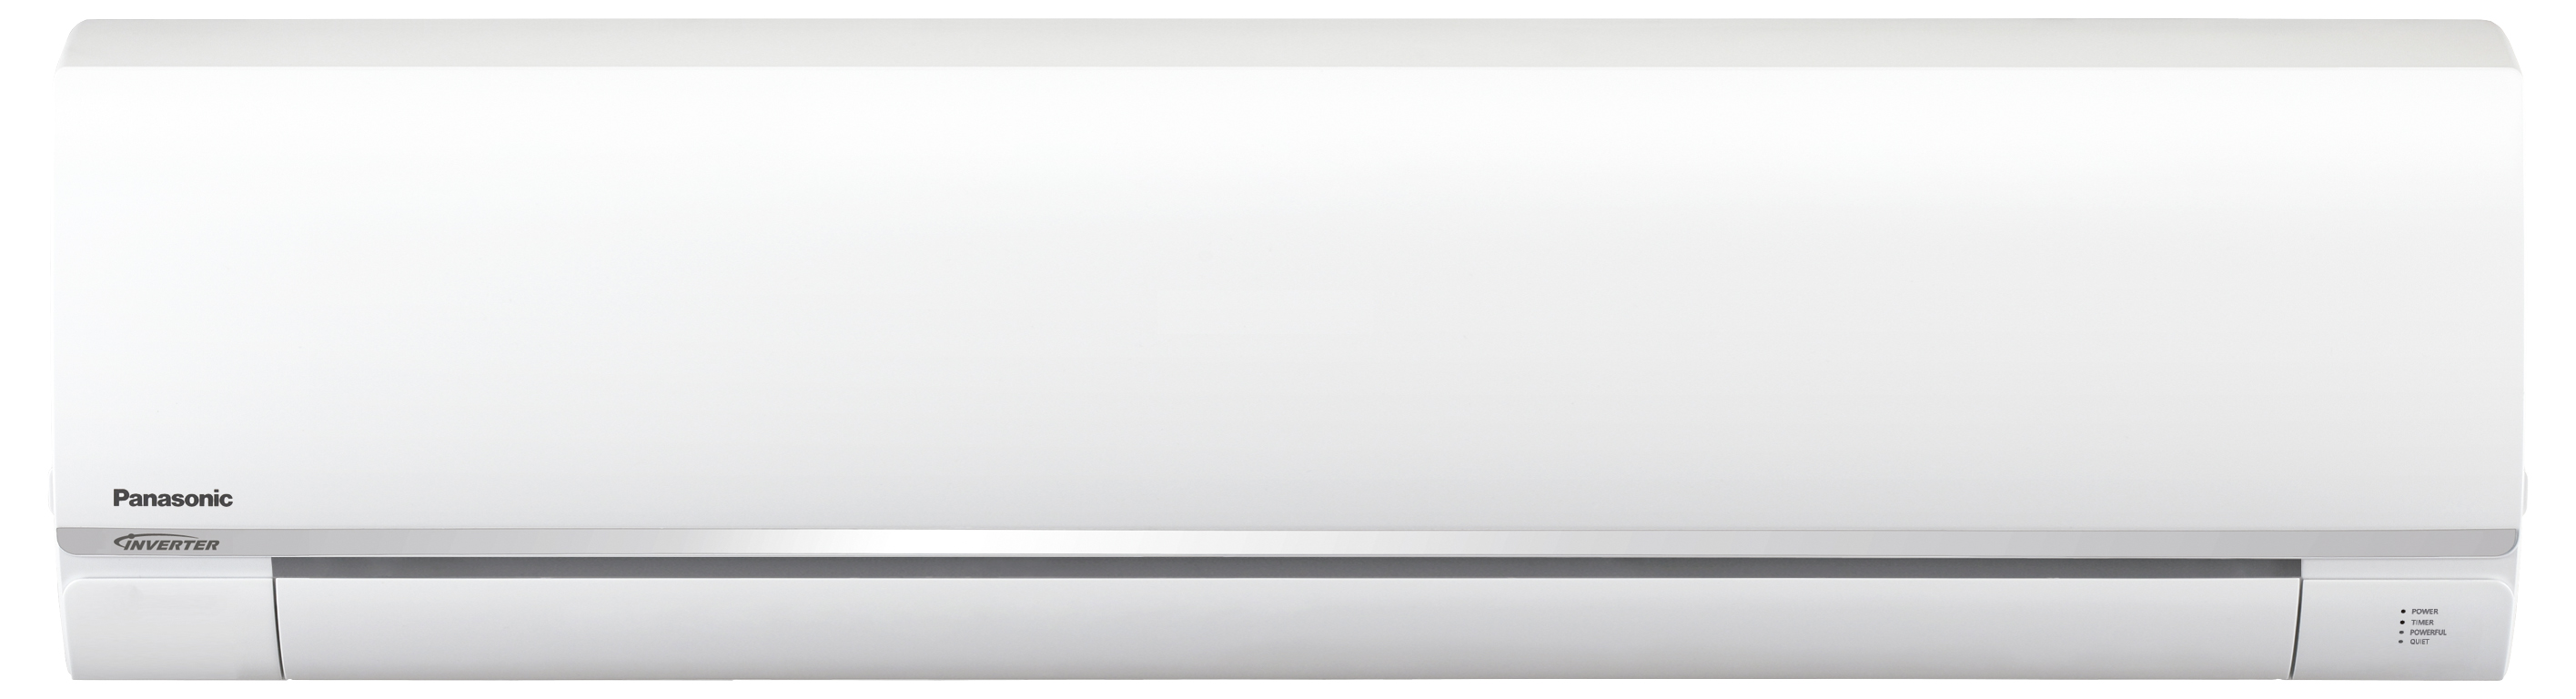 Photo of N/A Panasonic Wall Mounted RE Type Standard Inverter